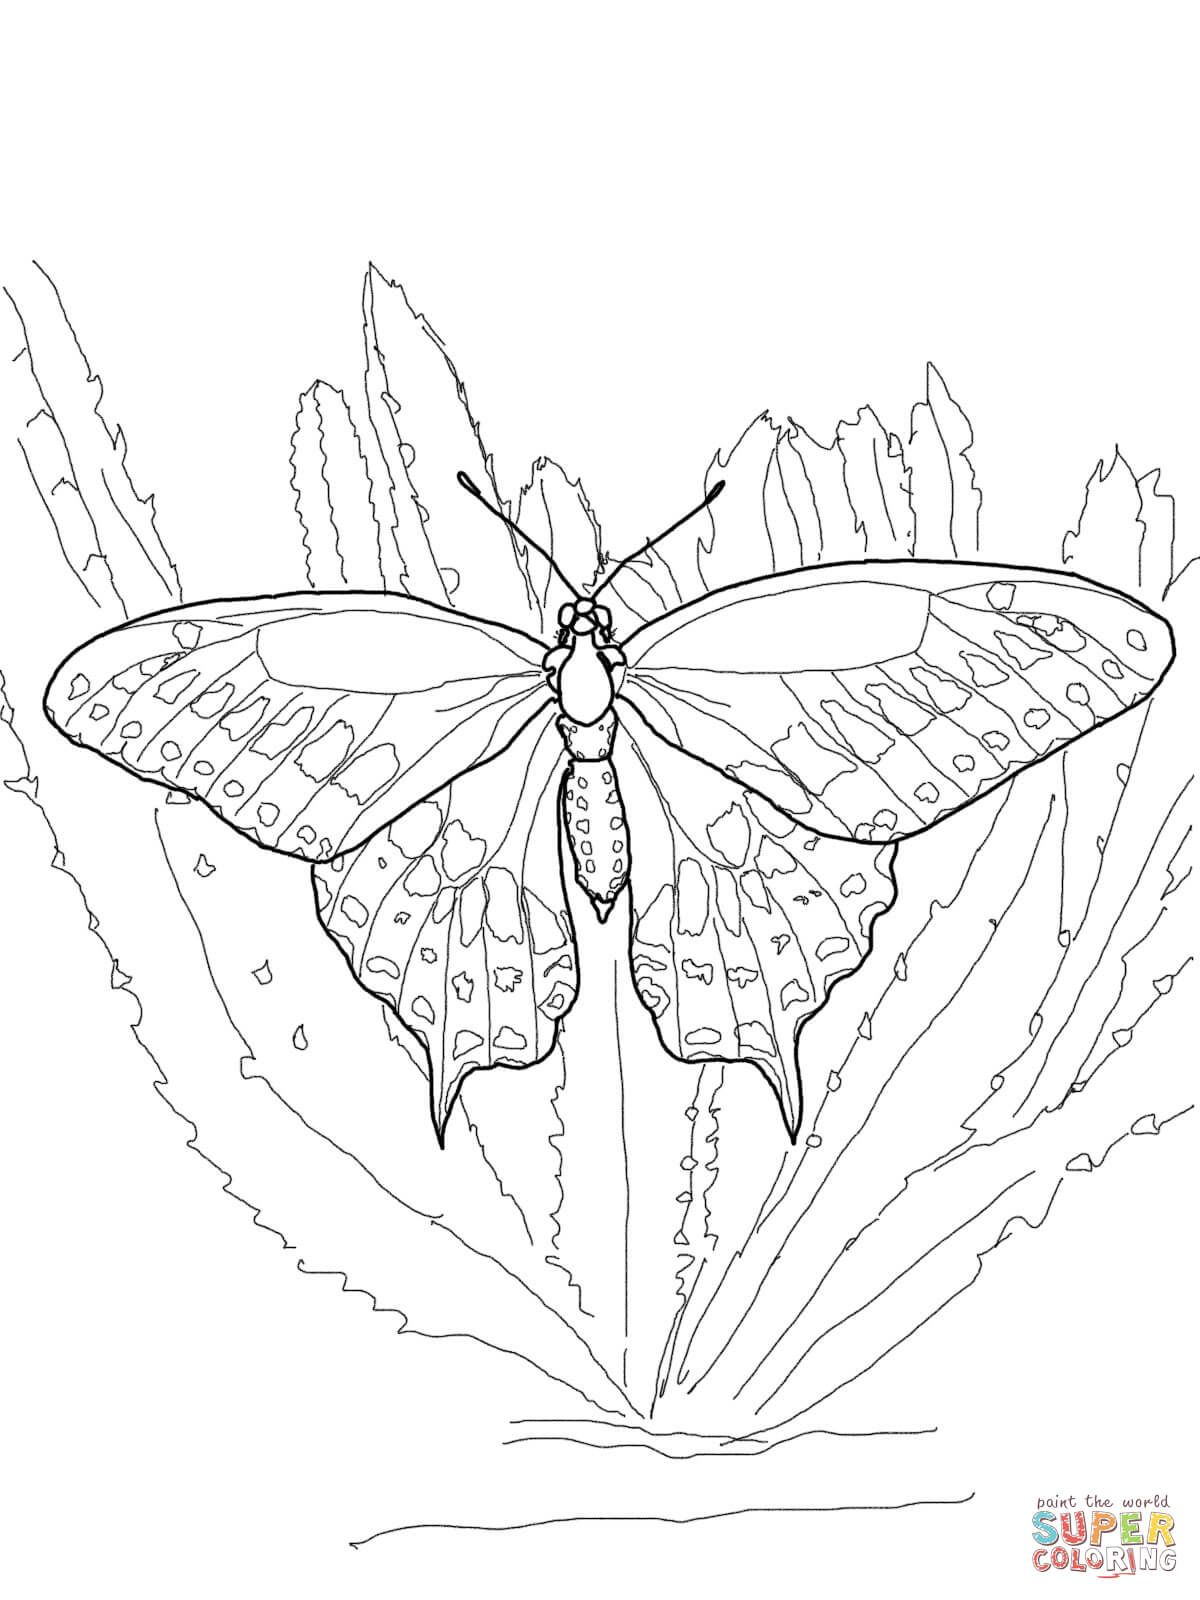 Black Swallowtail Super Coloring Butterfly Coloring Page